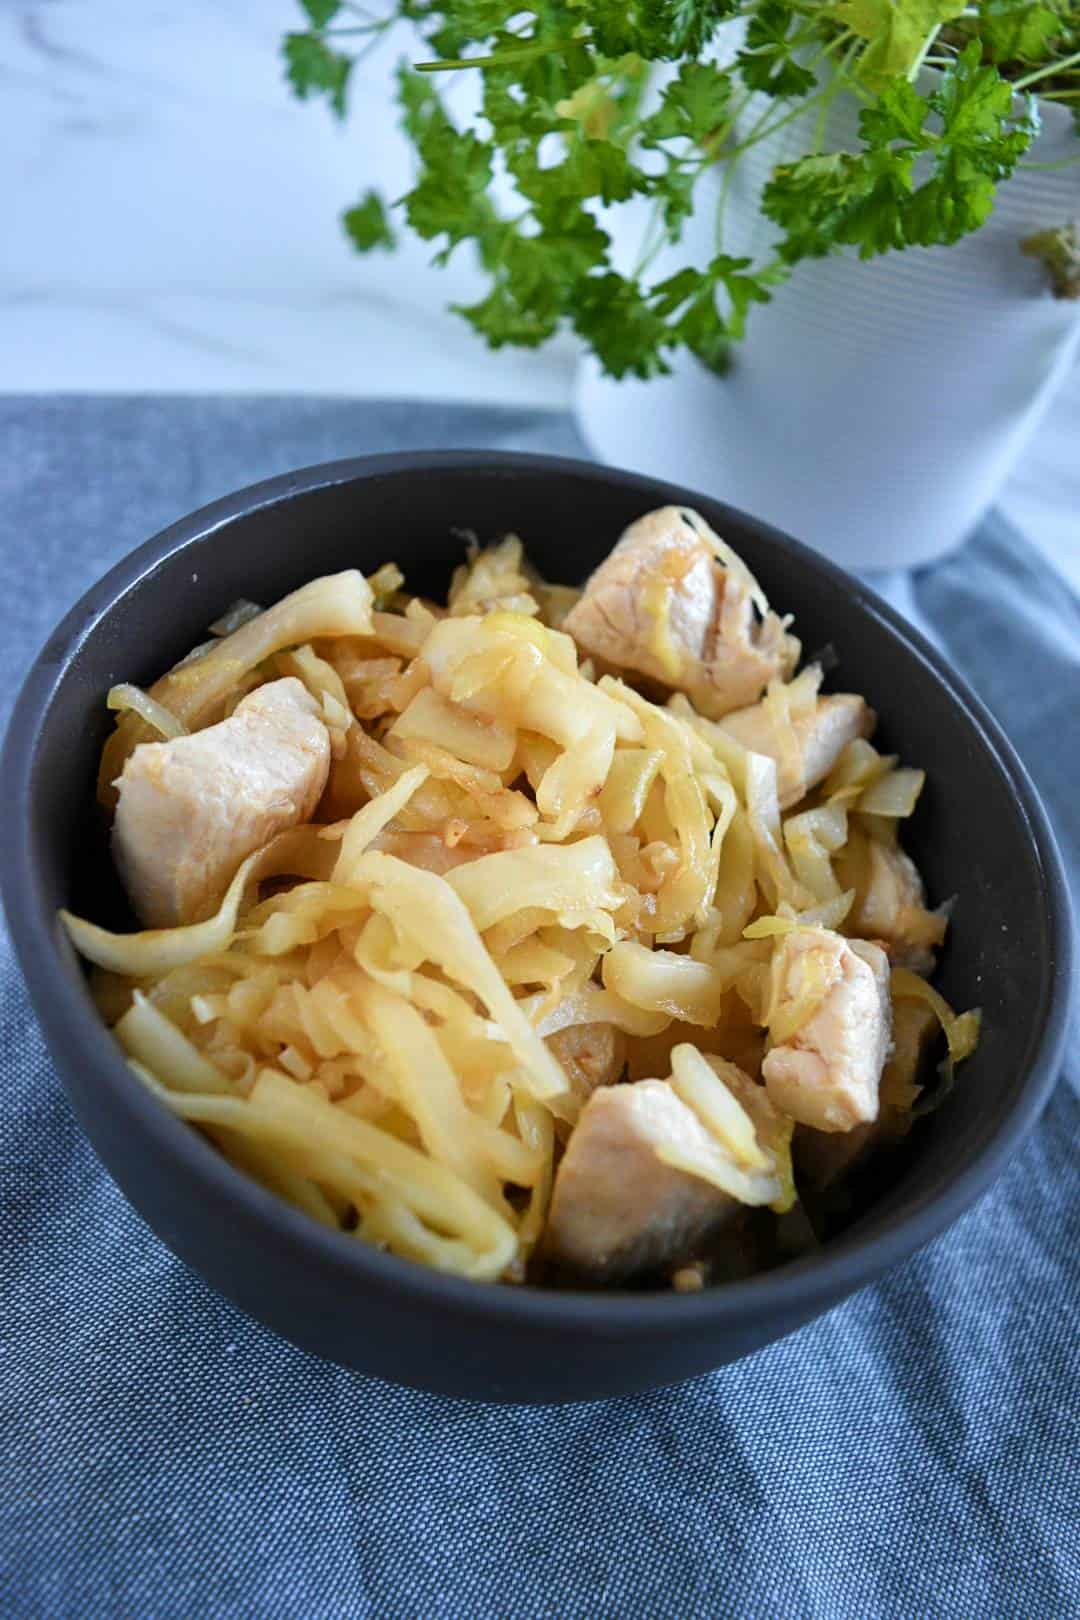 Cabbage and chicken stir fry in a bowl with fresh herbs in the background.